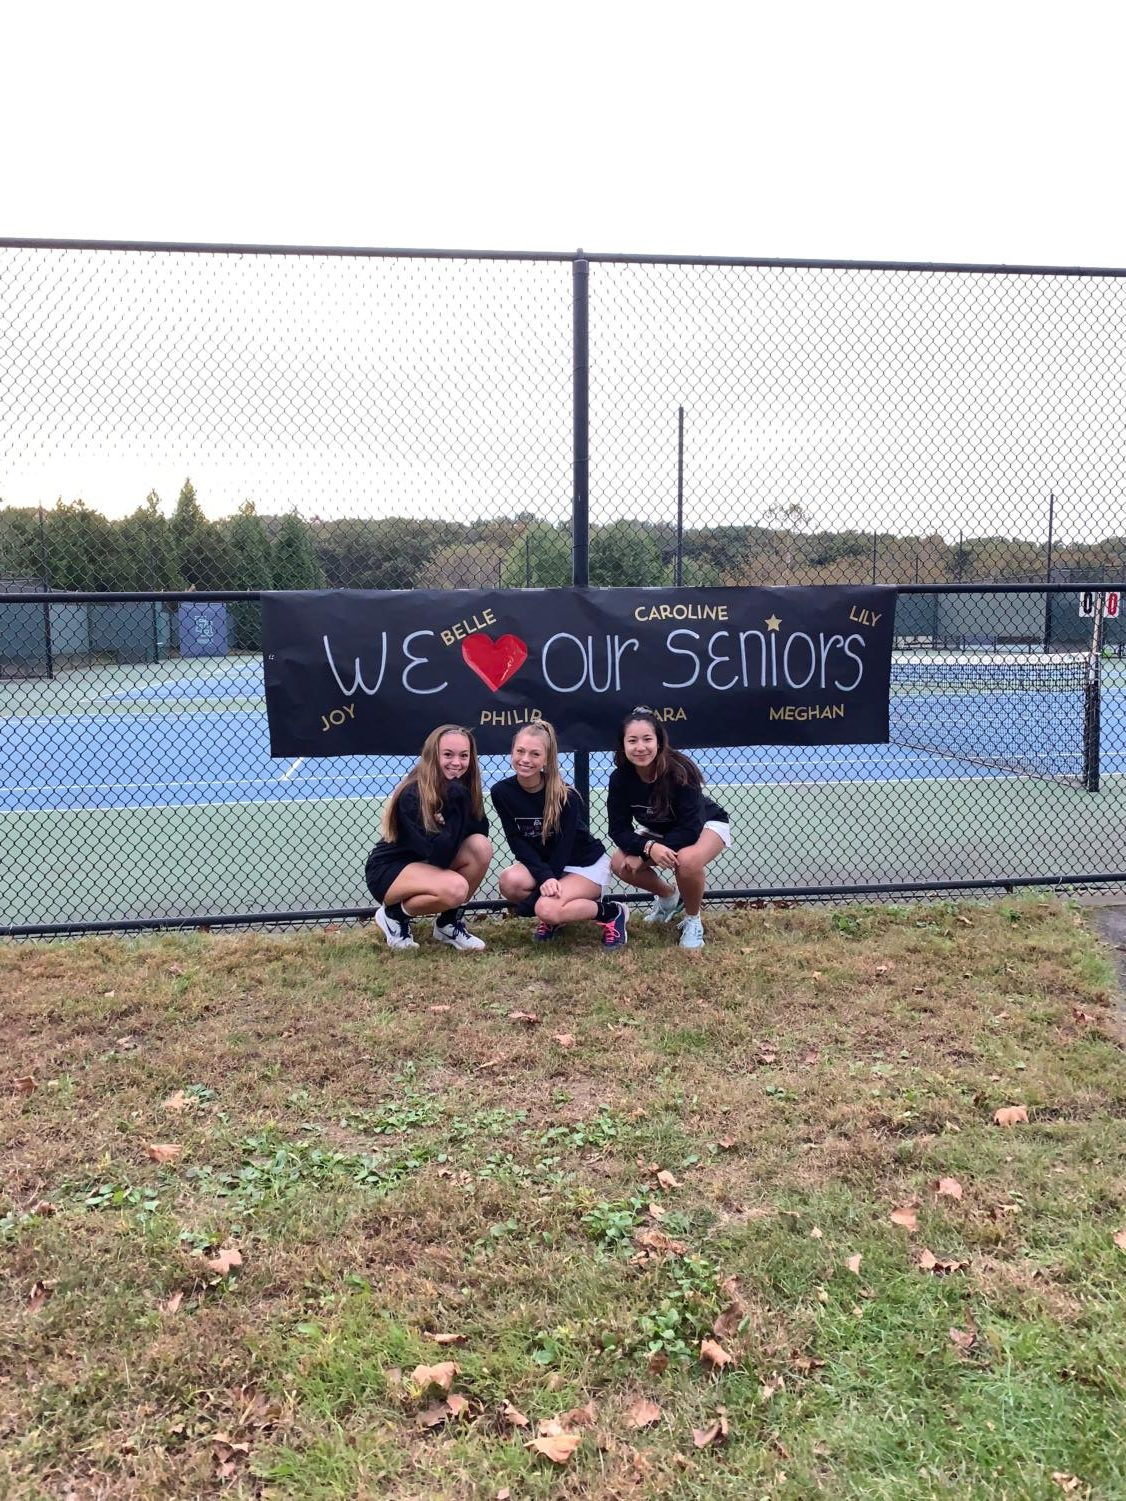 Seniors Caroline Dycio (left), Meghan Golden (middle), and Belle Ditthavong (right) pose in front of the poster team parents made honoring the seniors on the Girls' Varsity Tennis team.